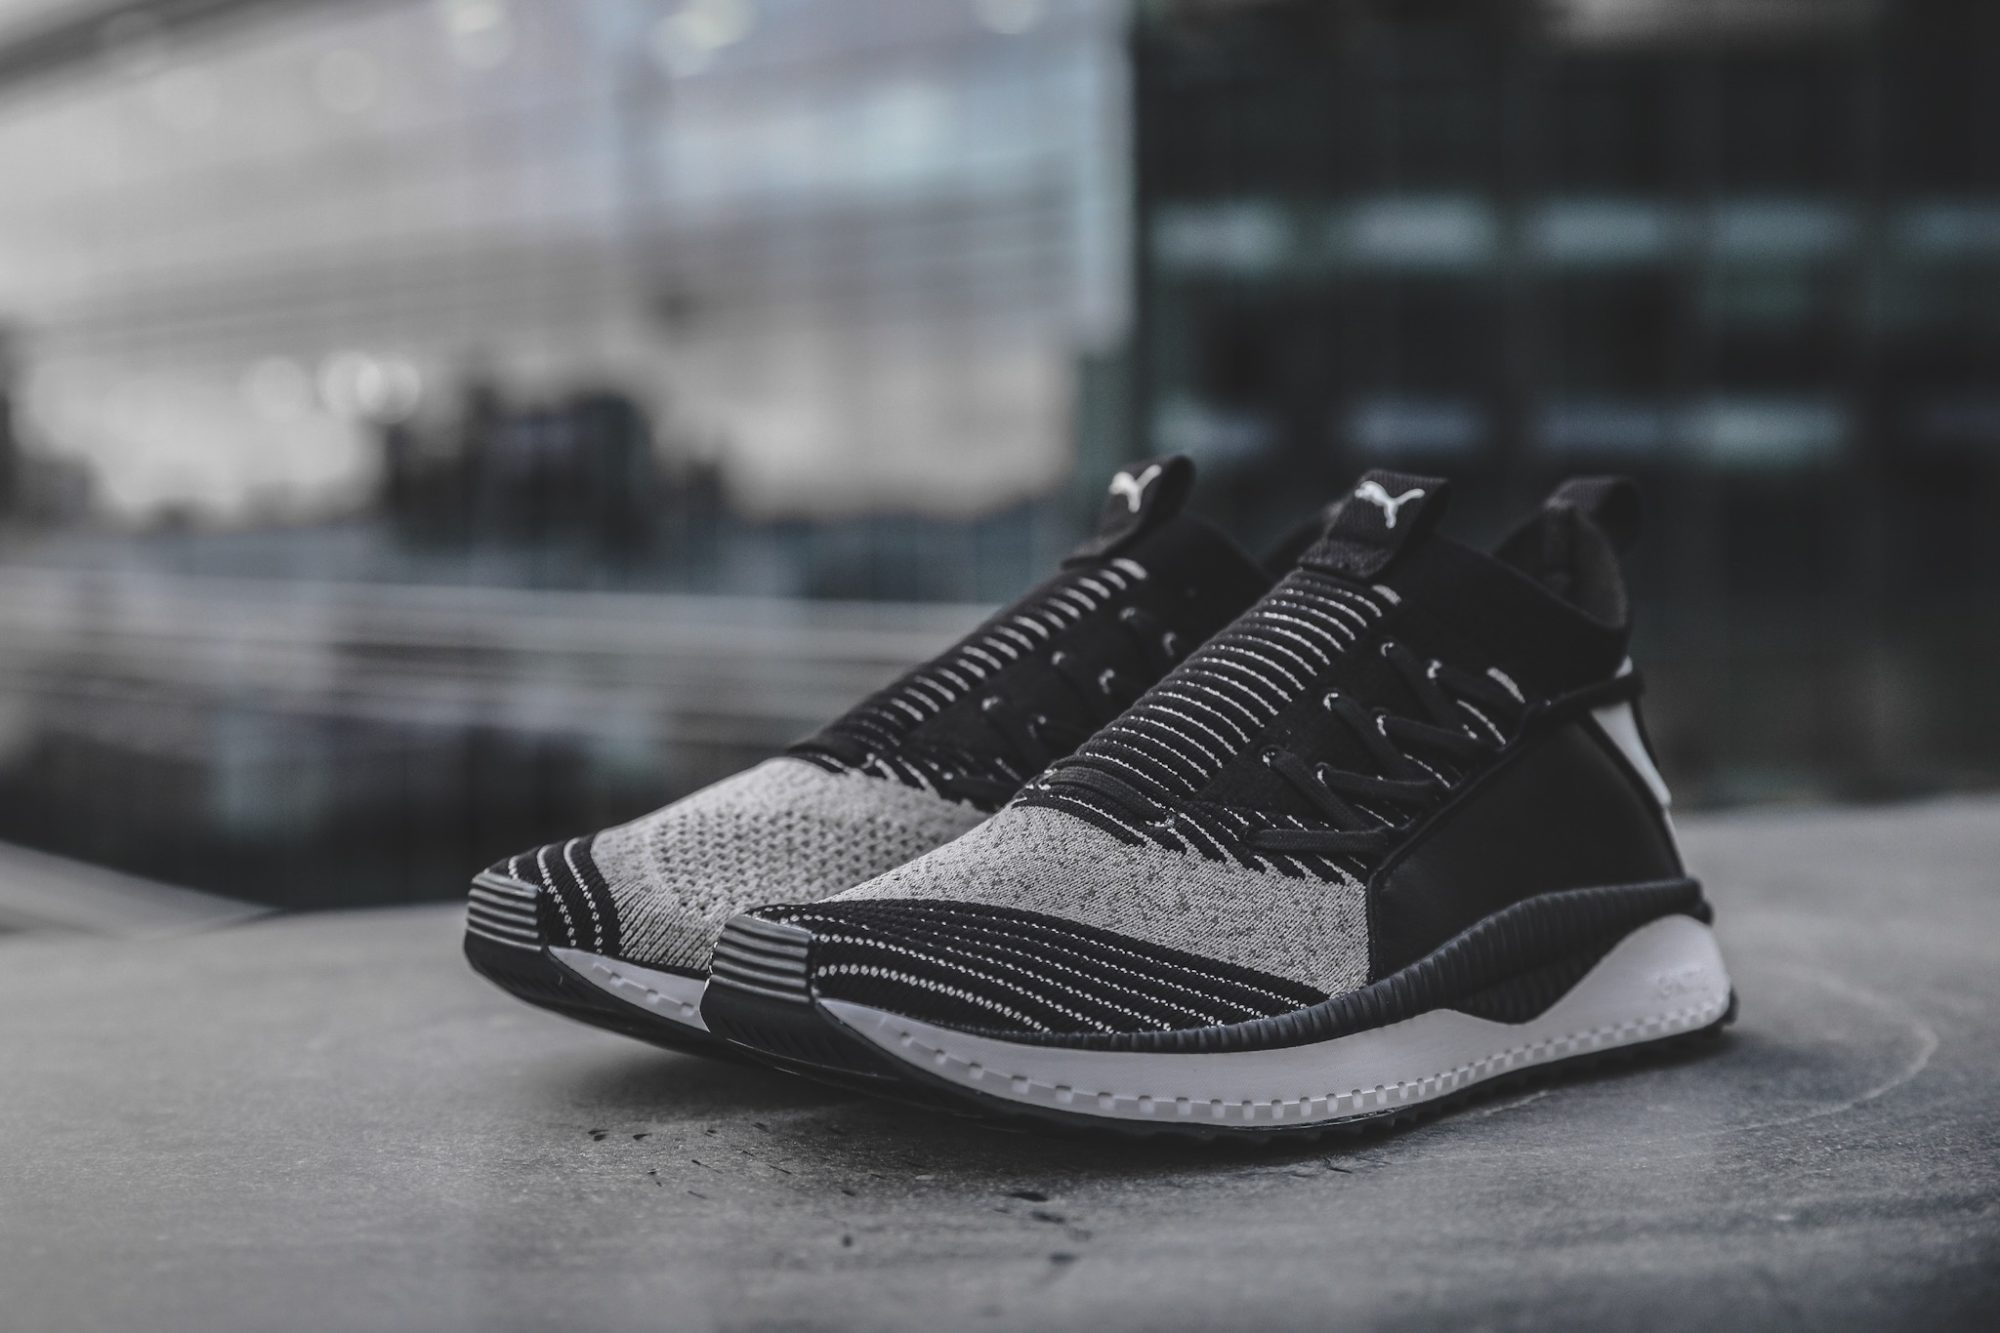 d1d1aa71b116 The Puma Tsugi Jun is now available at select retailers